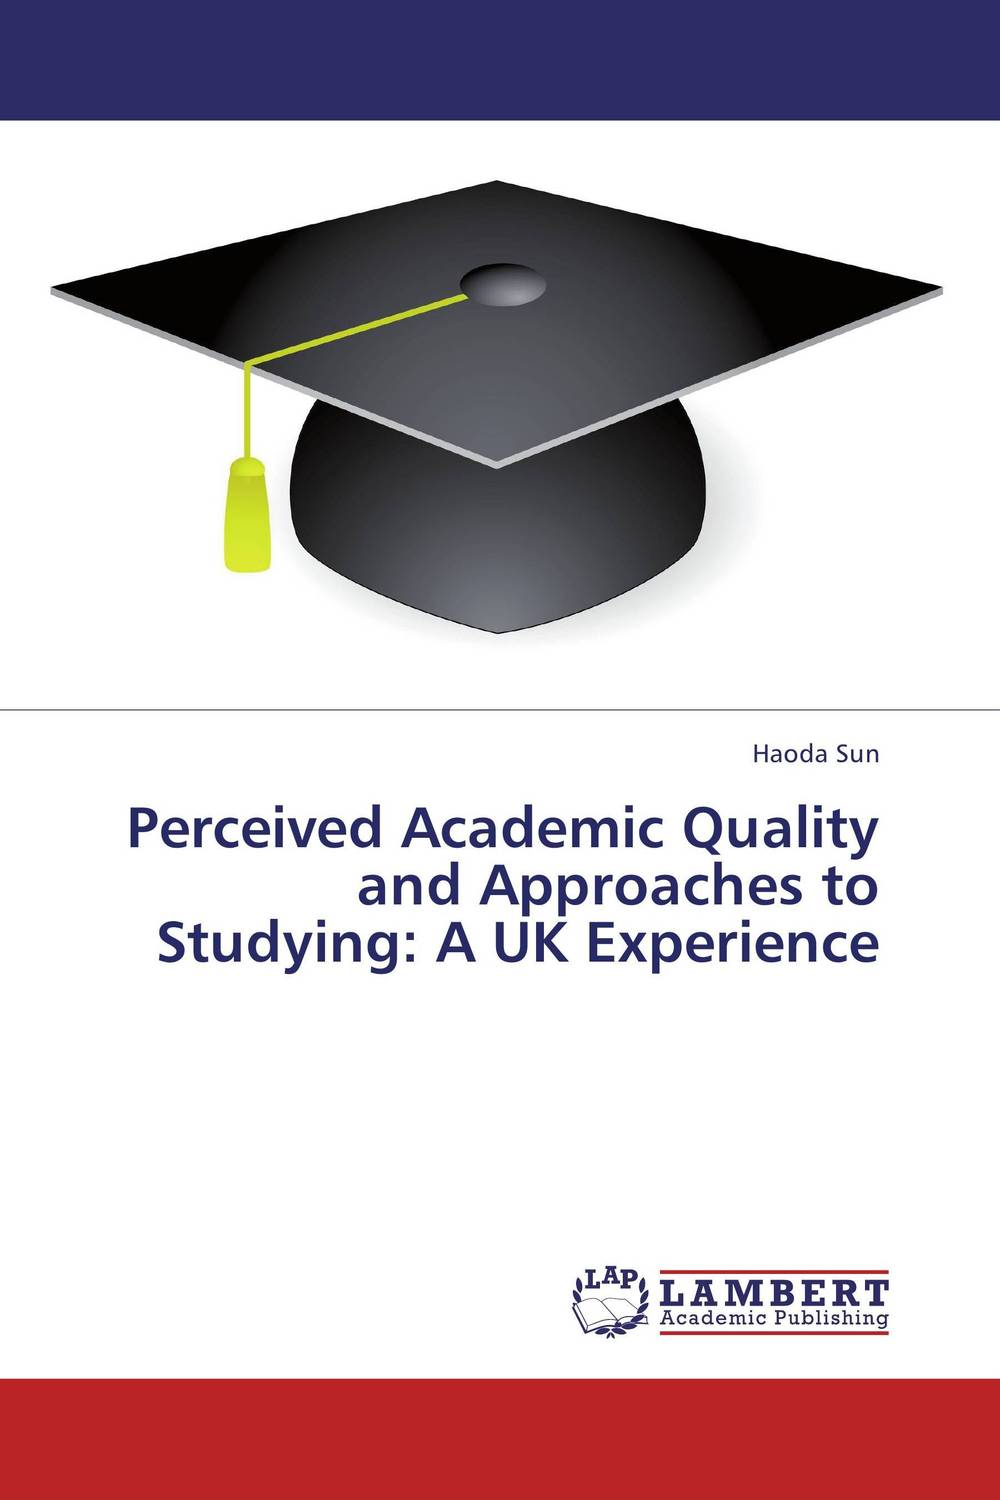 Perceived Academic Quality and Approaches to Studying: A UK Experience haoda sun perceived academic quality and approaches to studying a uk experience